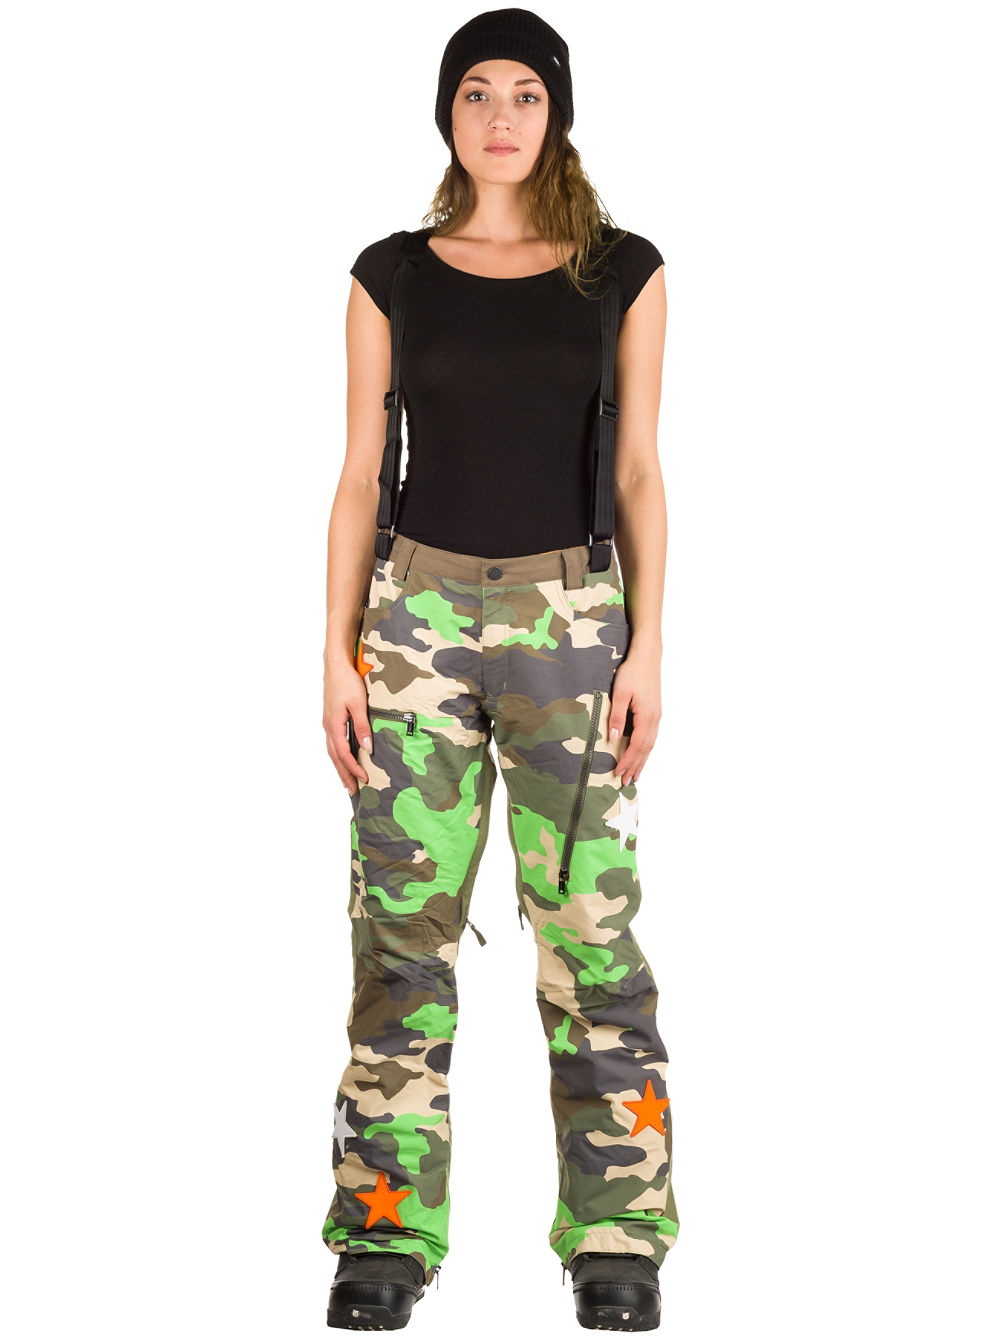 L.A.M.B. Studio Star Pants